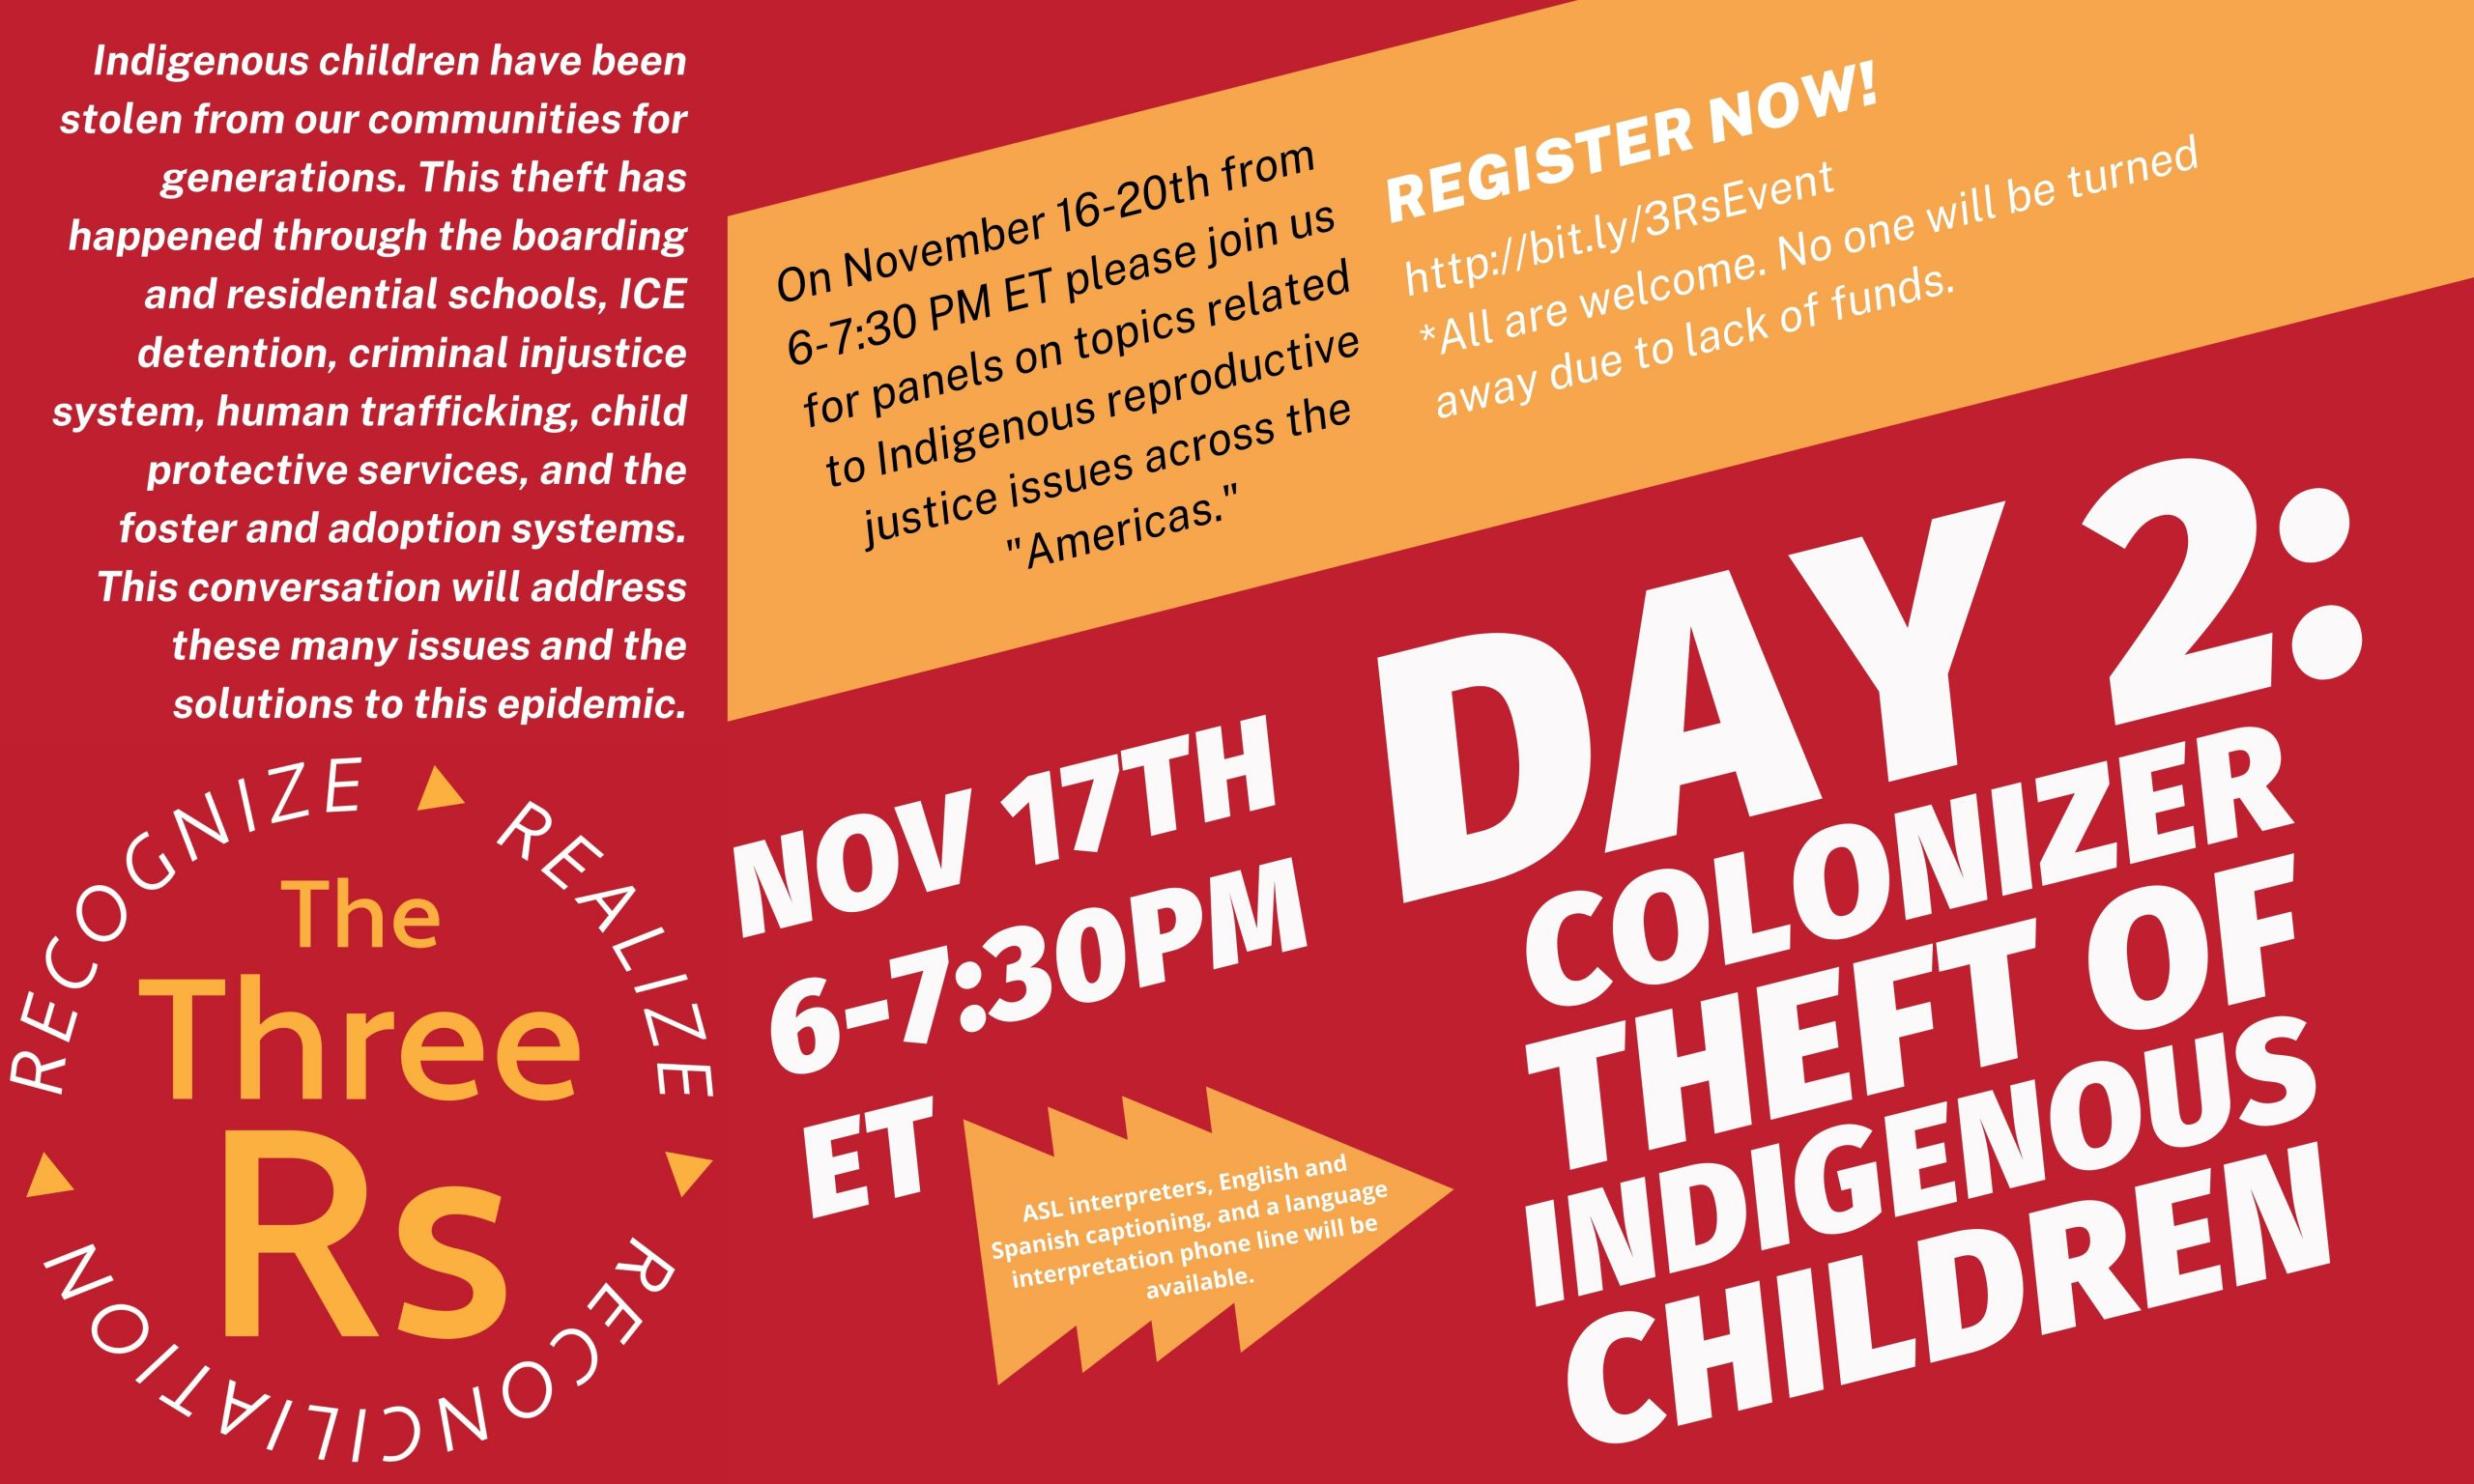 colonizer theft of indigenous children #3Rs